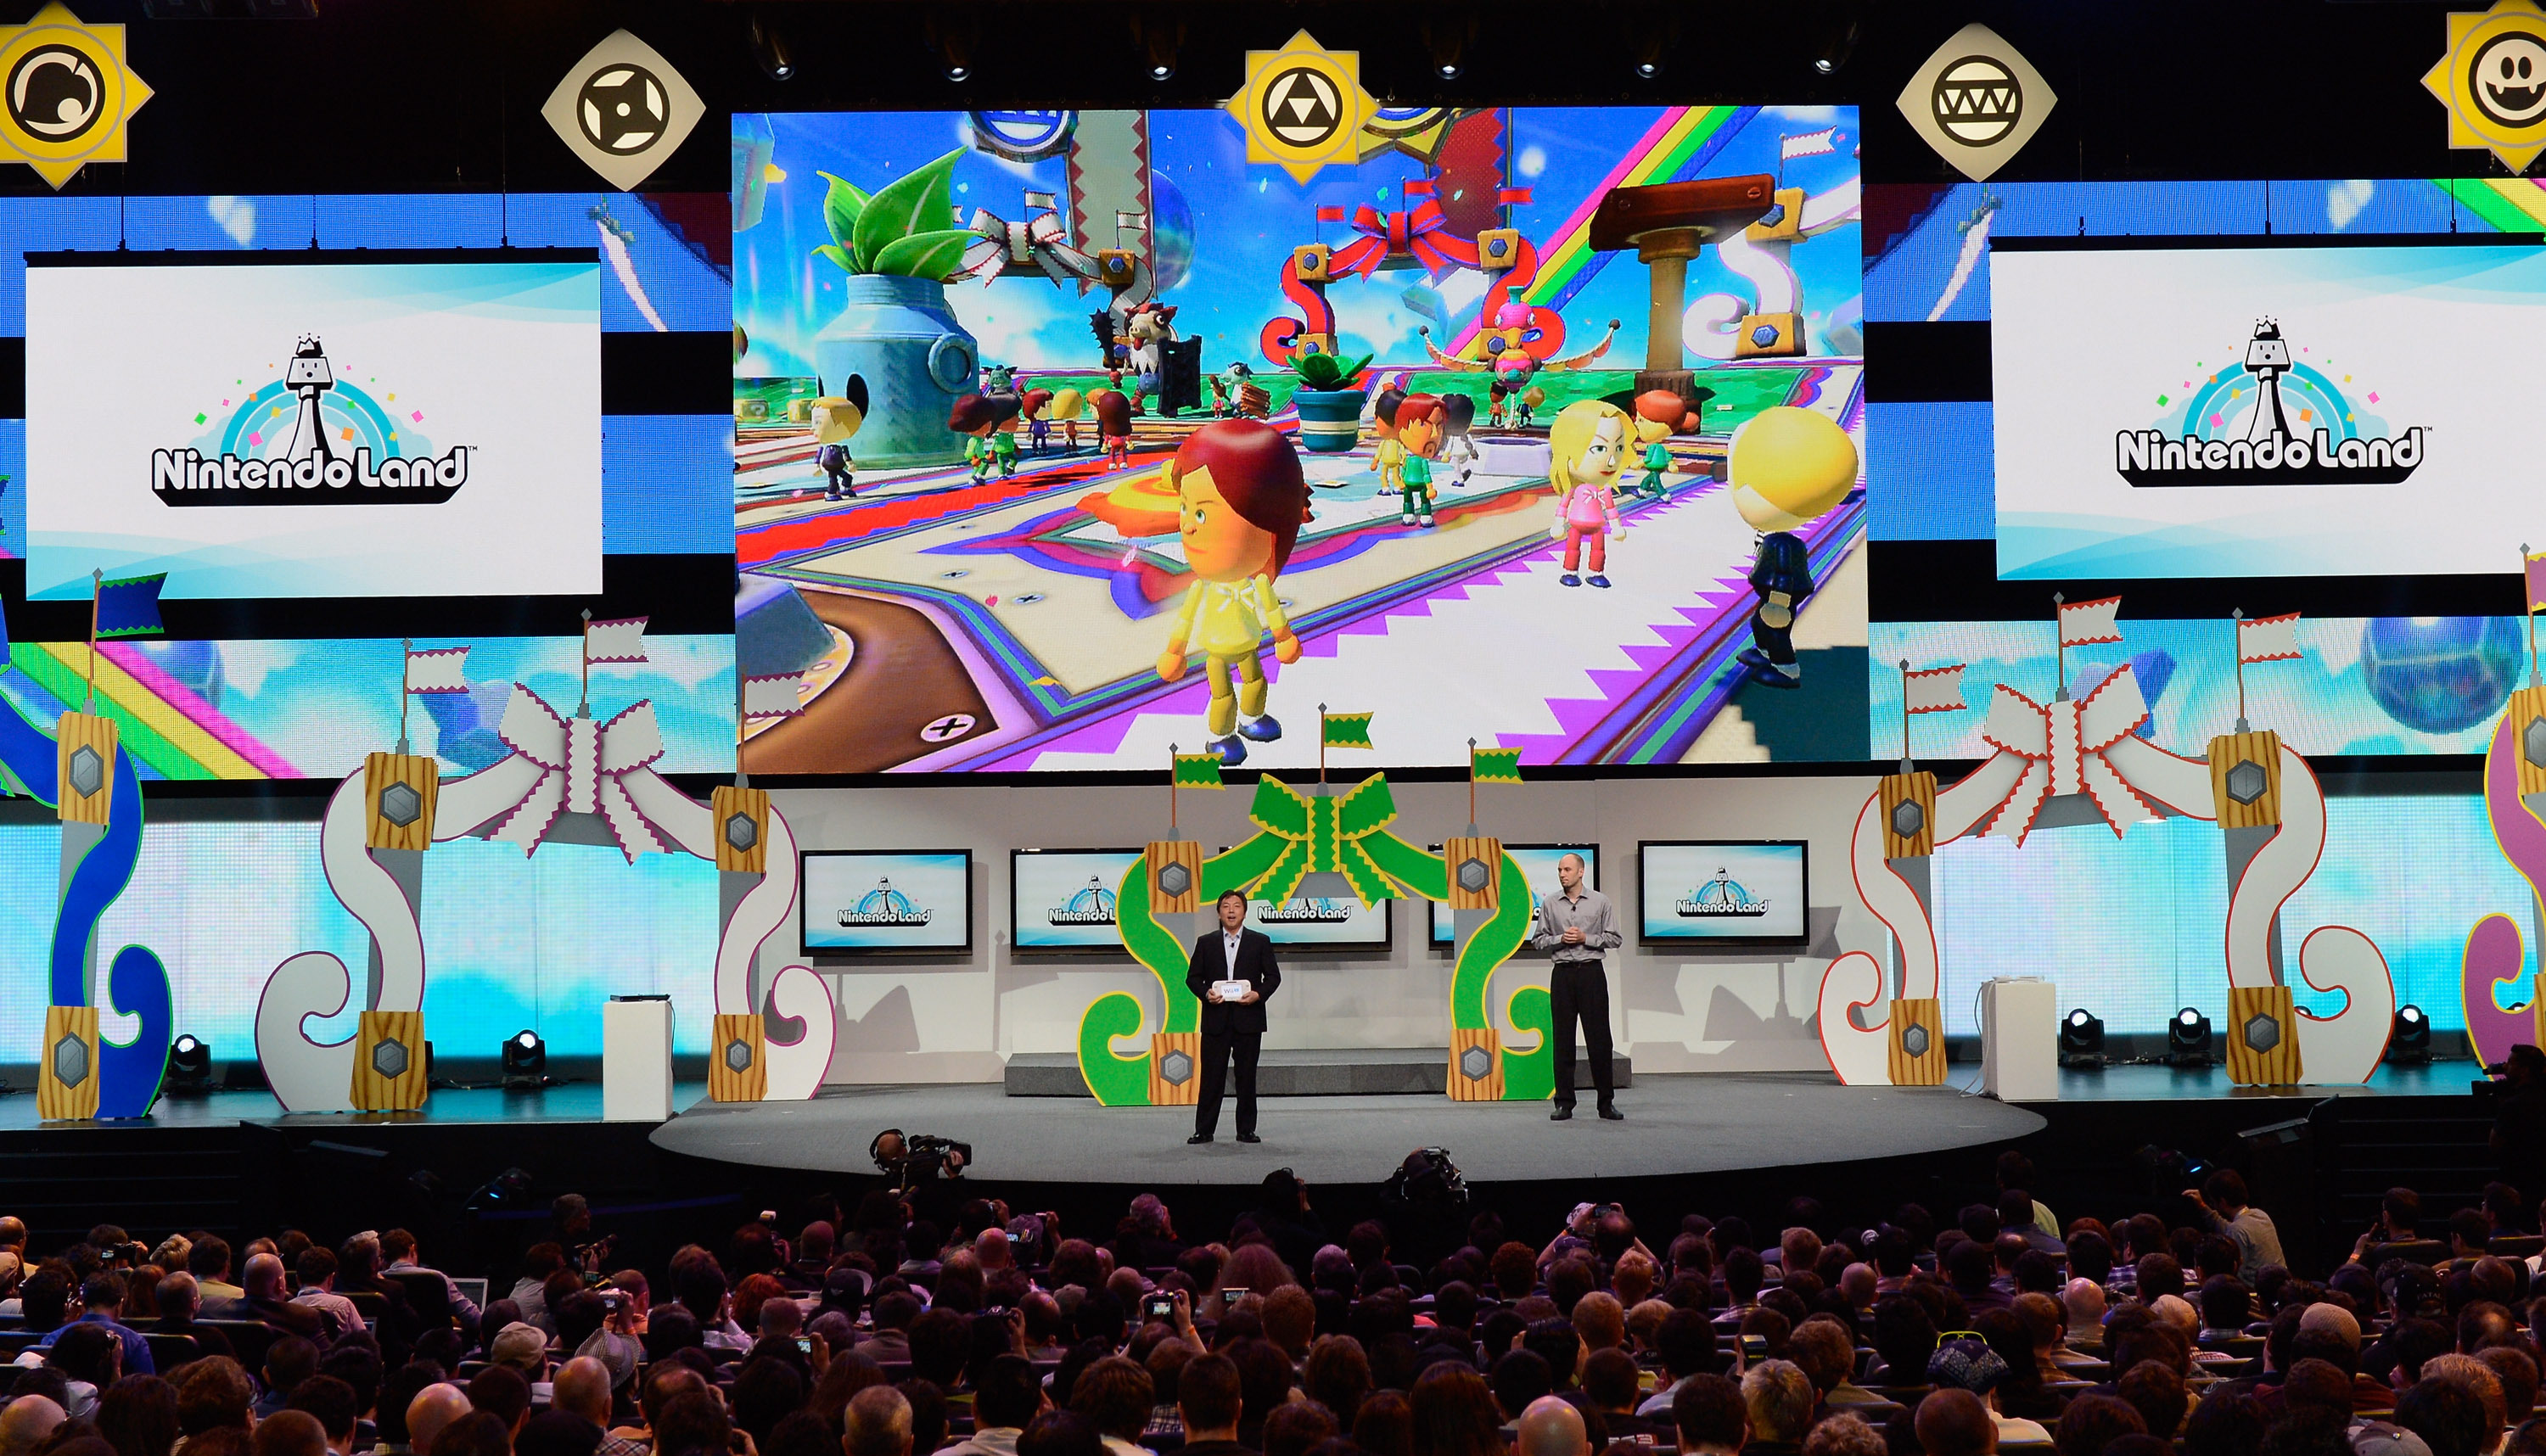 NintendoLand is a theme park game with different activities designed for Nintendo's new hand-held game console Wii U. It was presented at the Electronic Entertainment Expo in Los Angeles in June.